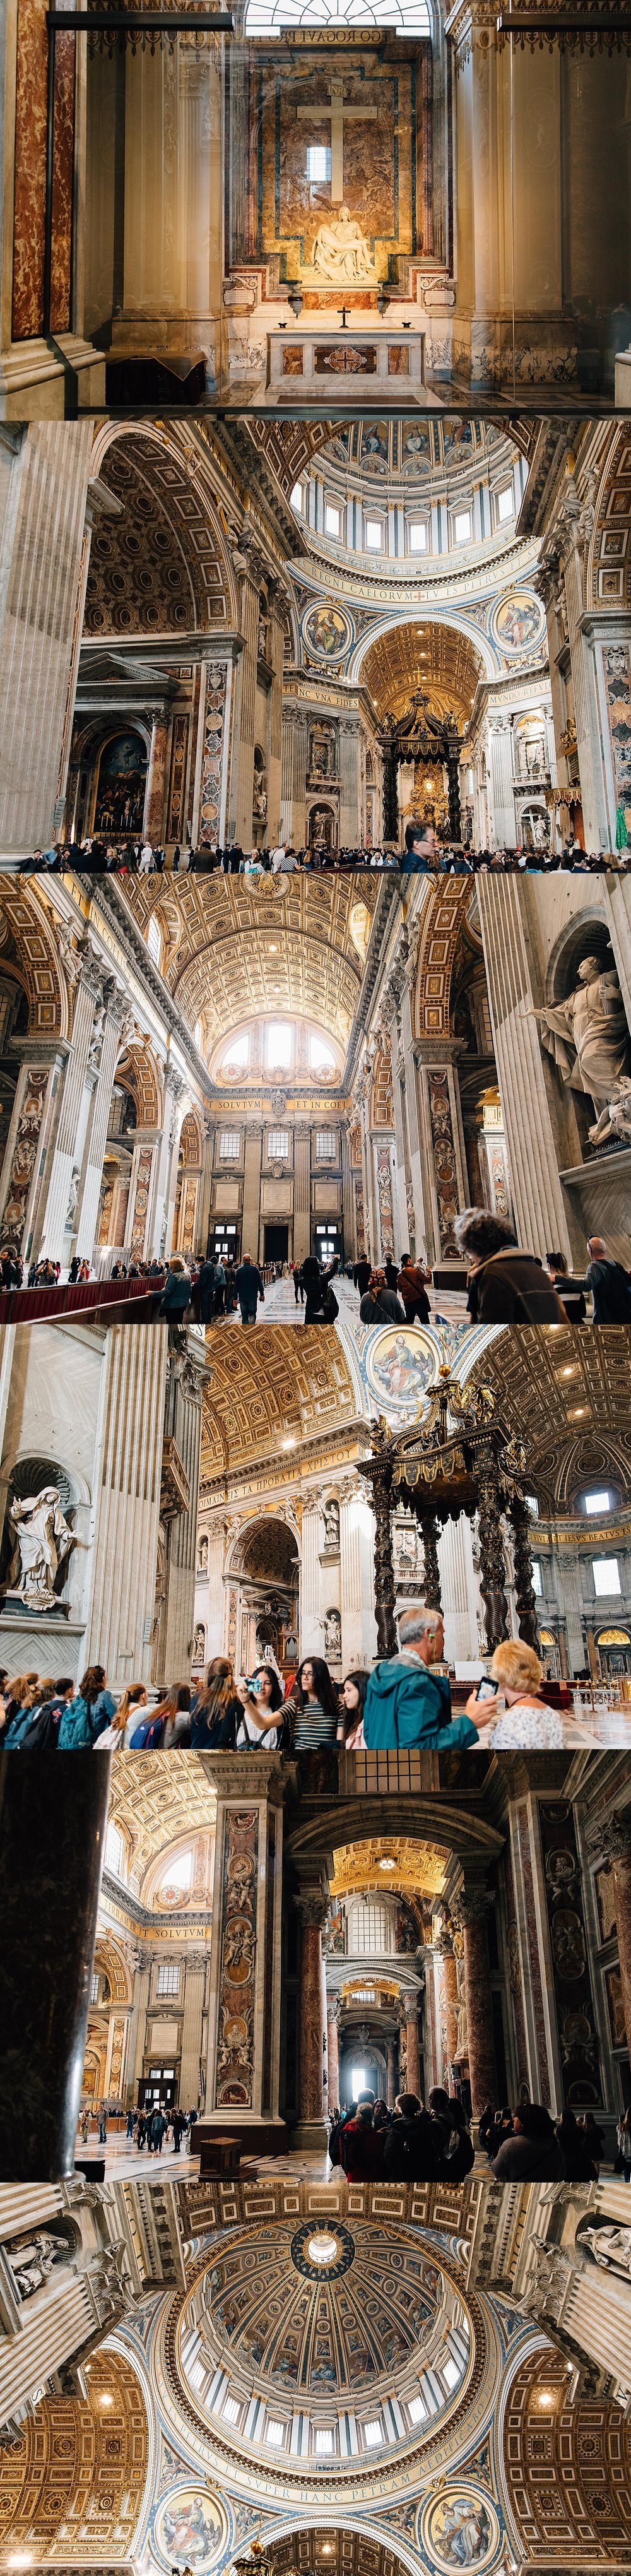 St. Peter's Basilica - a grand space richly decorated. Including Bernini's baldacchino and The Pietà by Michelangelo.